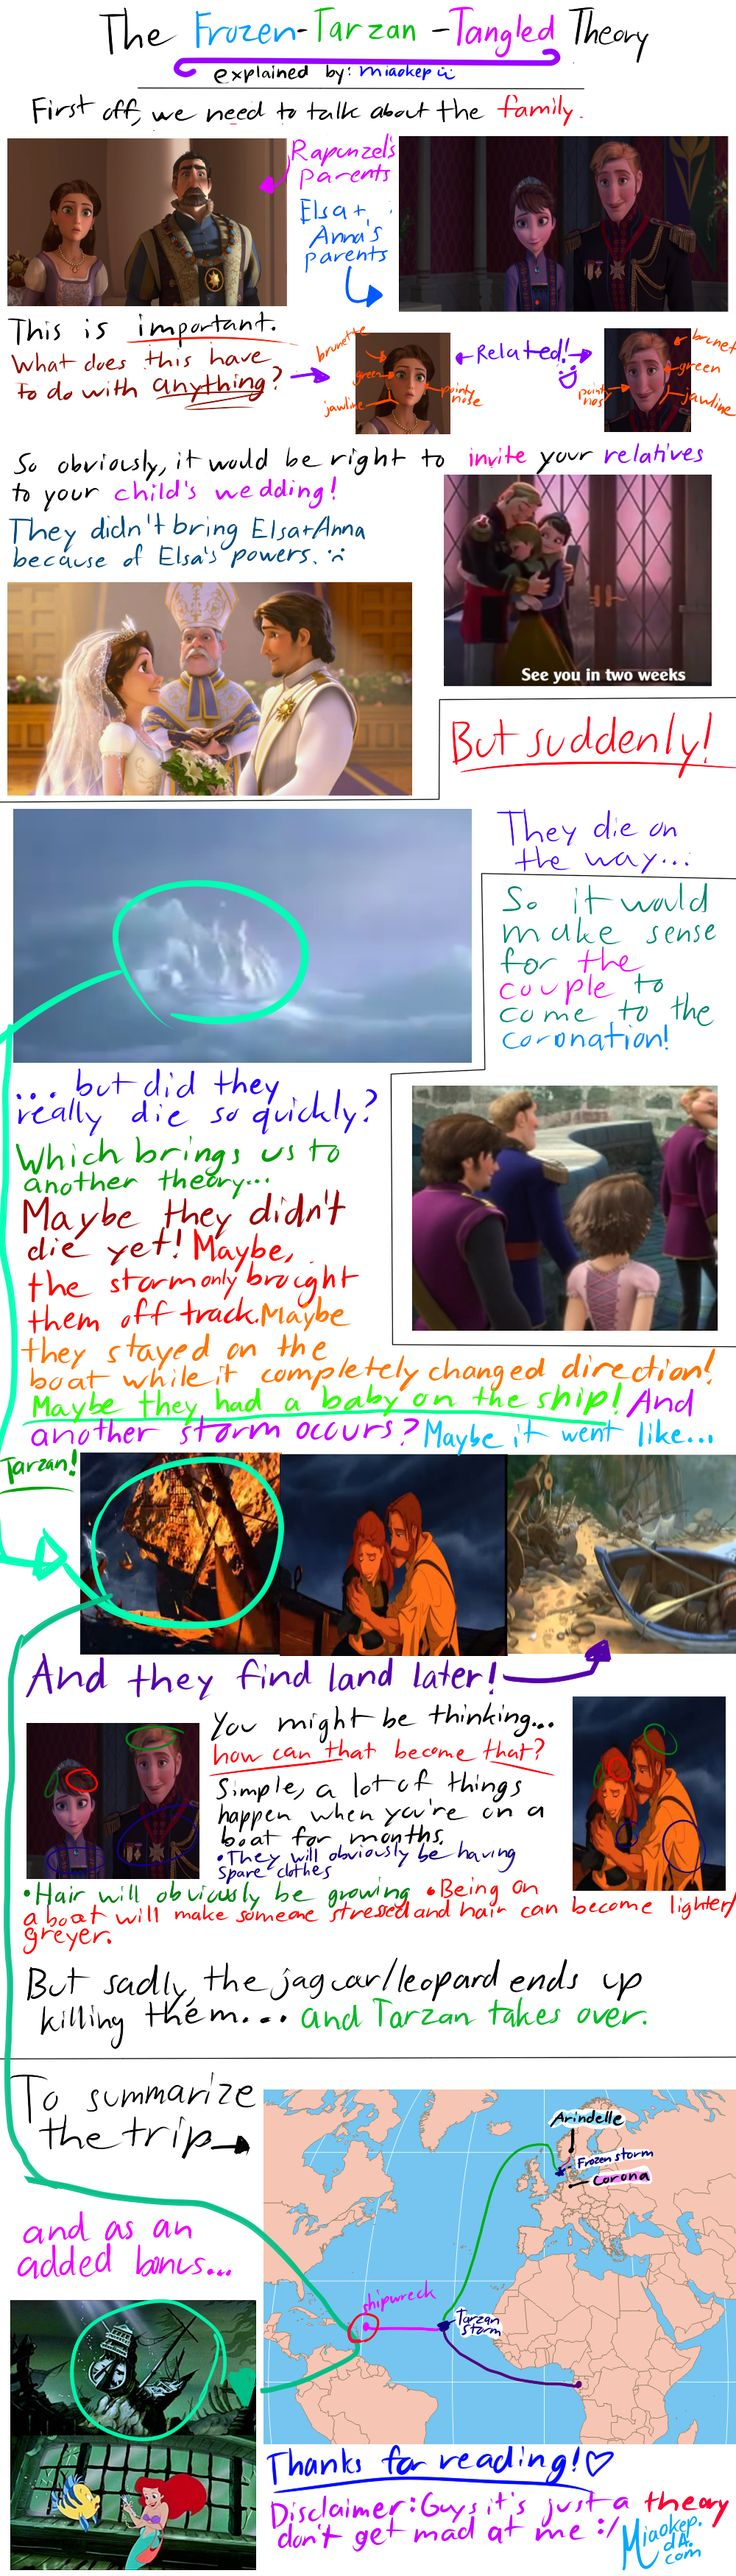 The Frozen-Tarzan-Tangled Theory by miaokep.deviantart.com on @deviantART